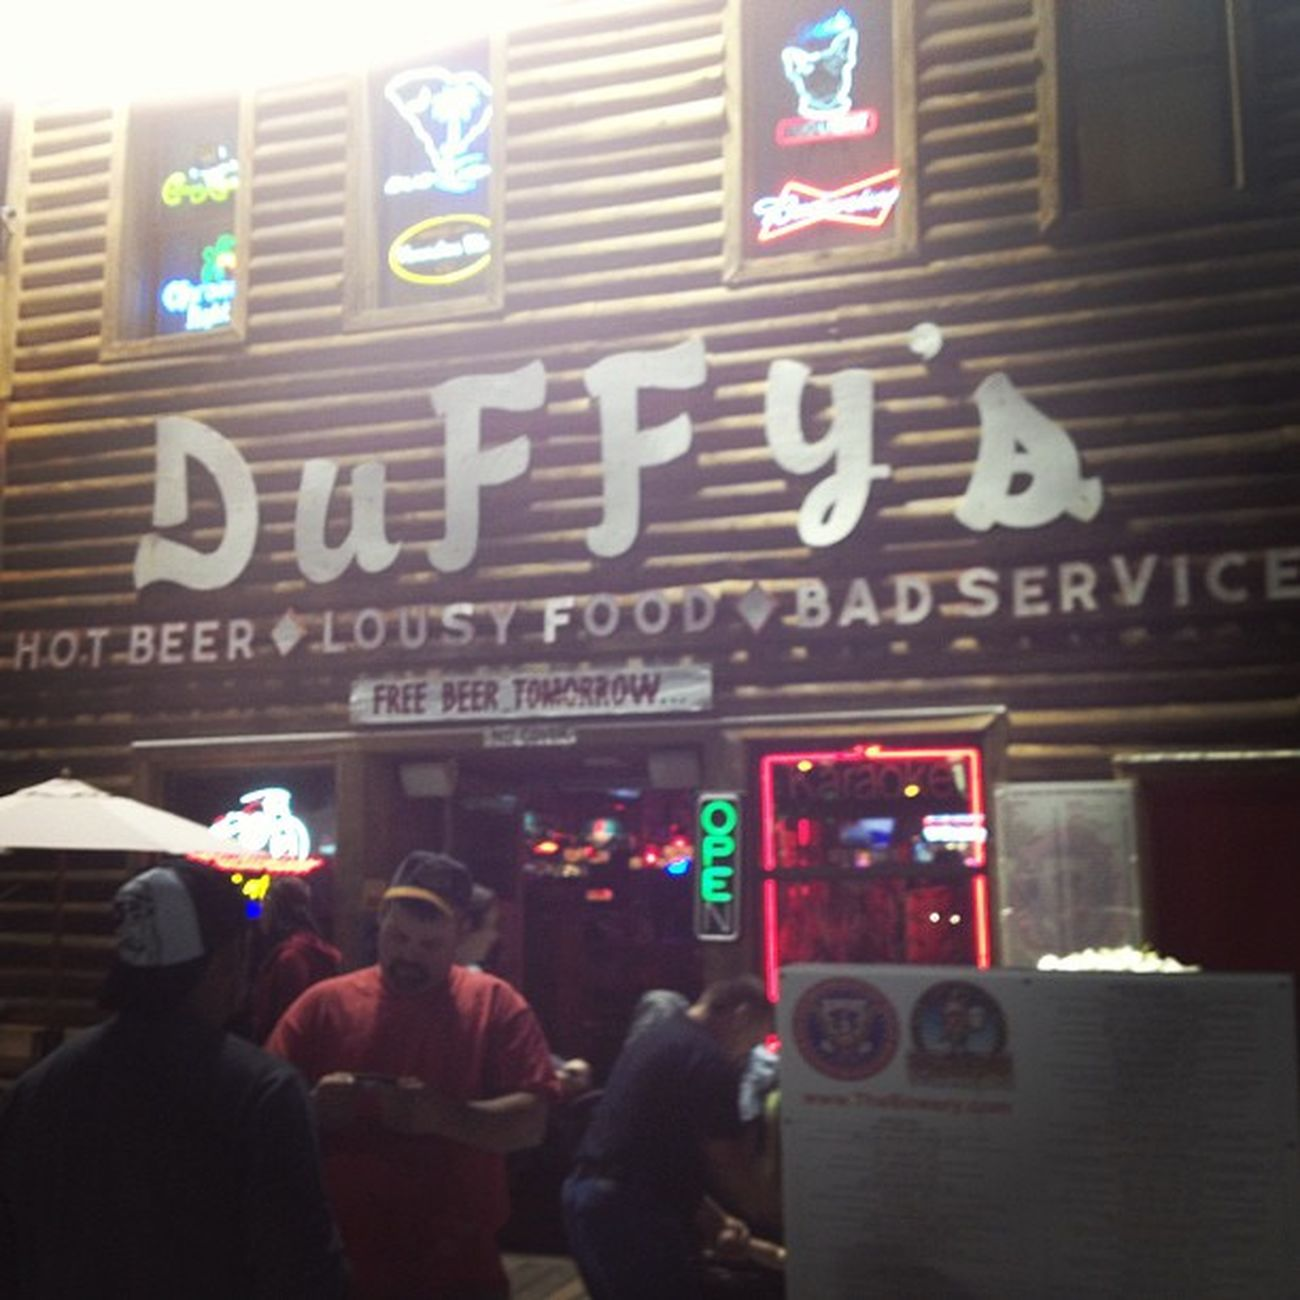 where our night begins. Duffys Myrtlebeach Duffysmyrtlebeach Drinks hotbeerlpusyservice